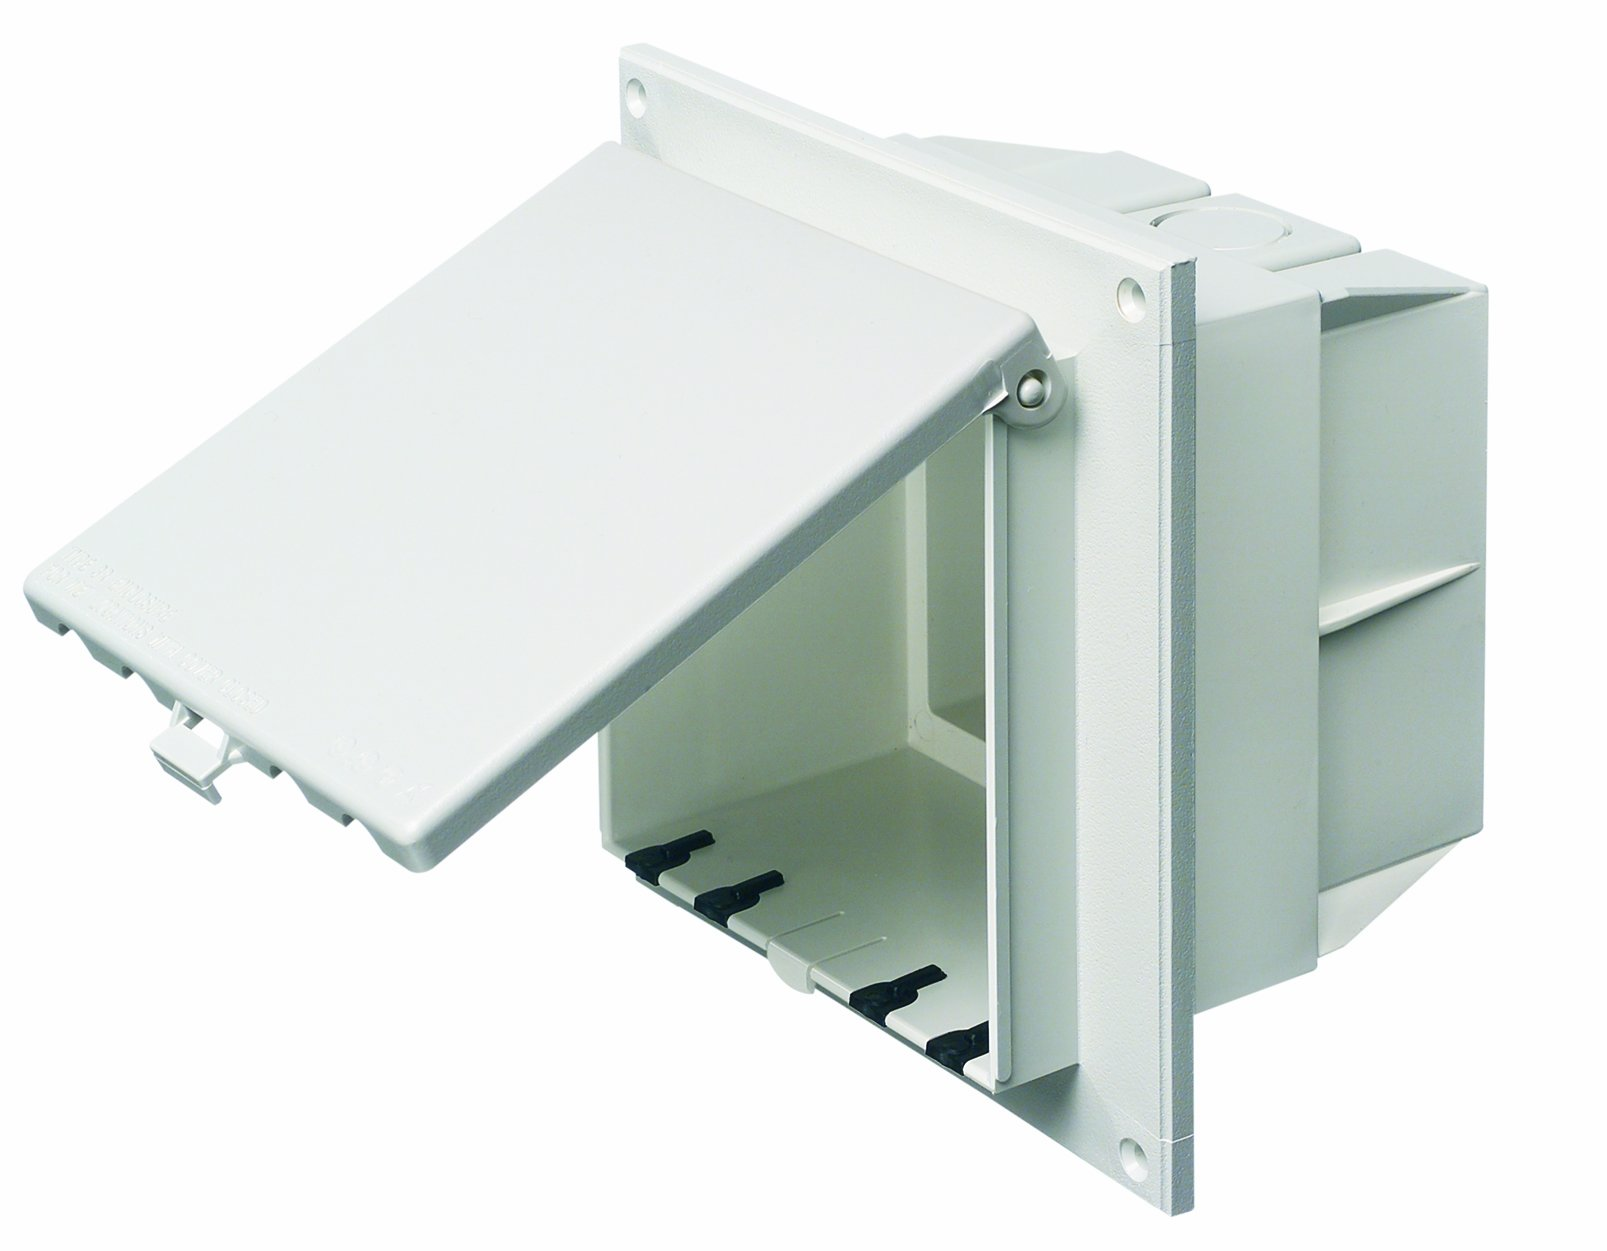 Arlington DBVR2W-1 Low Profile IN BOX Electrical Box with Weatherproof Cover for Flat Surfaces, 2-Gang, Vertical, White by Arlington Industries